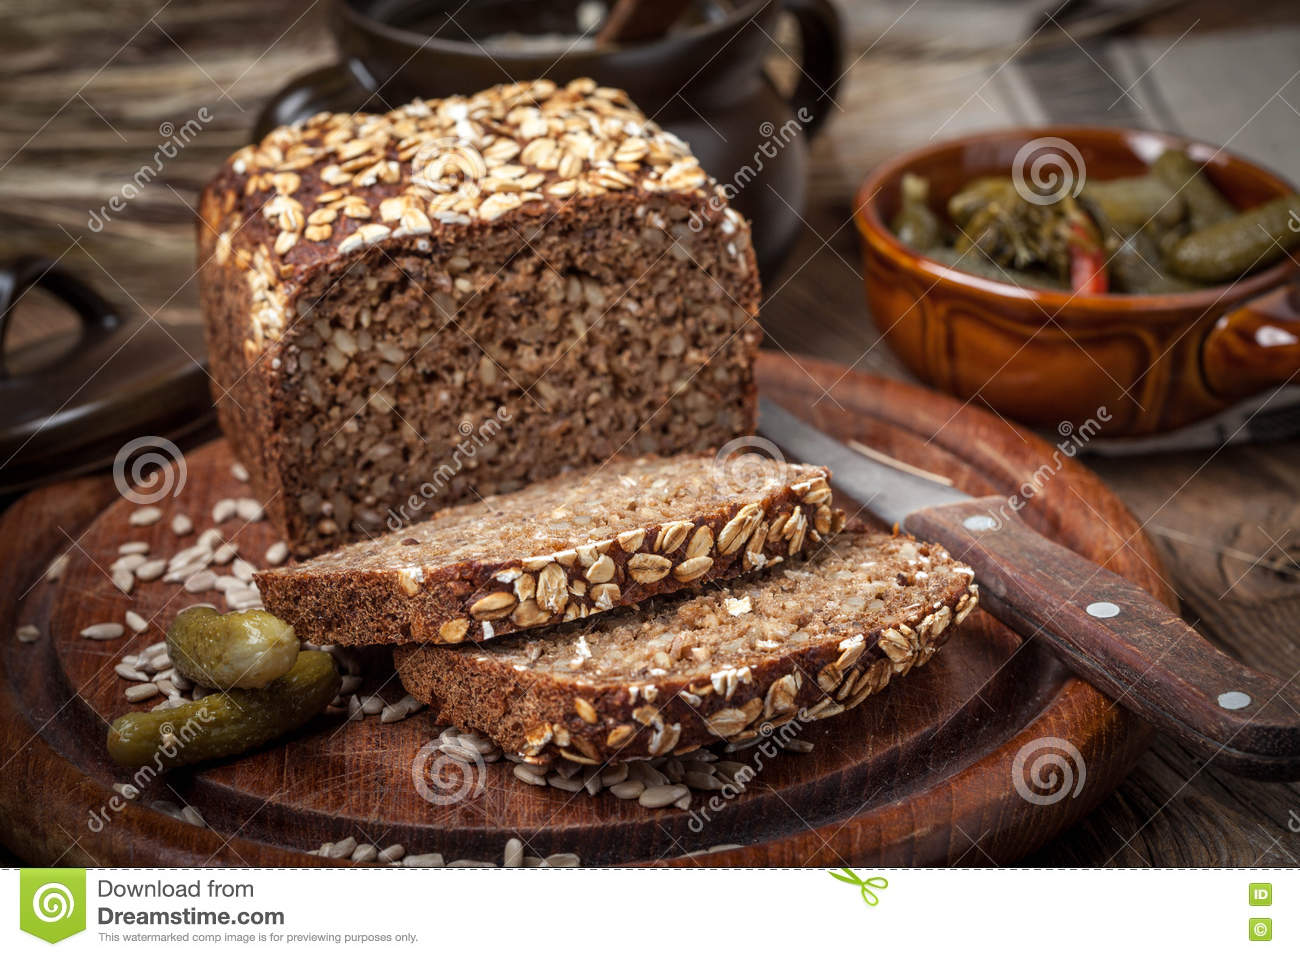 Download Whole Grain Rye Bread With Seeds. Stock Photo - Image of free, eating: 79924198